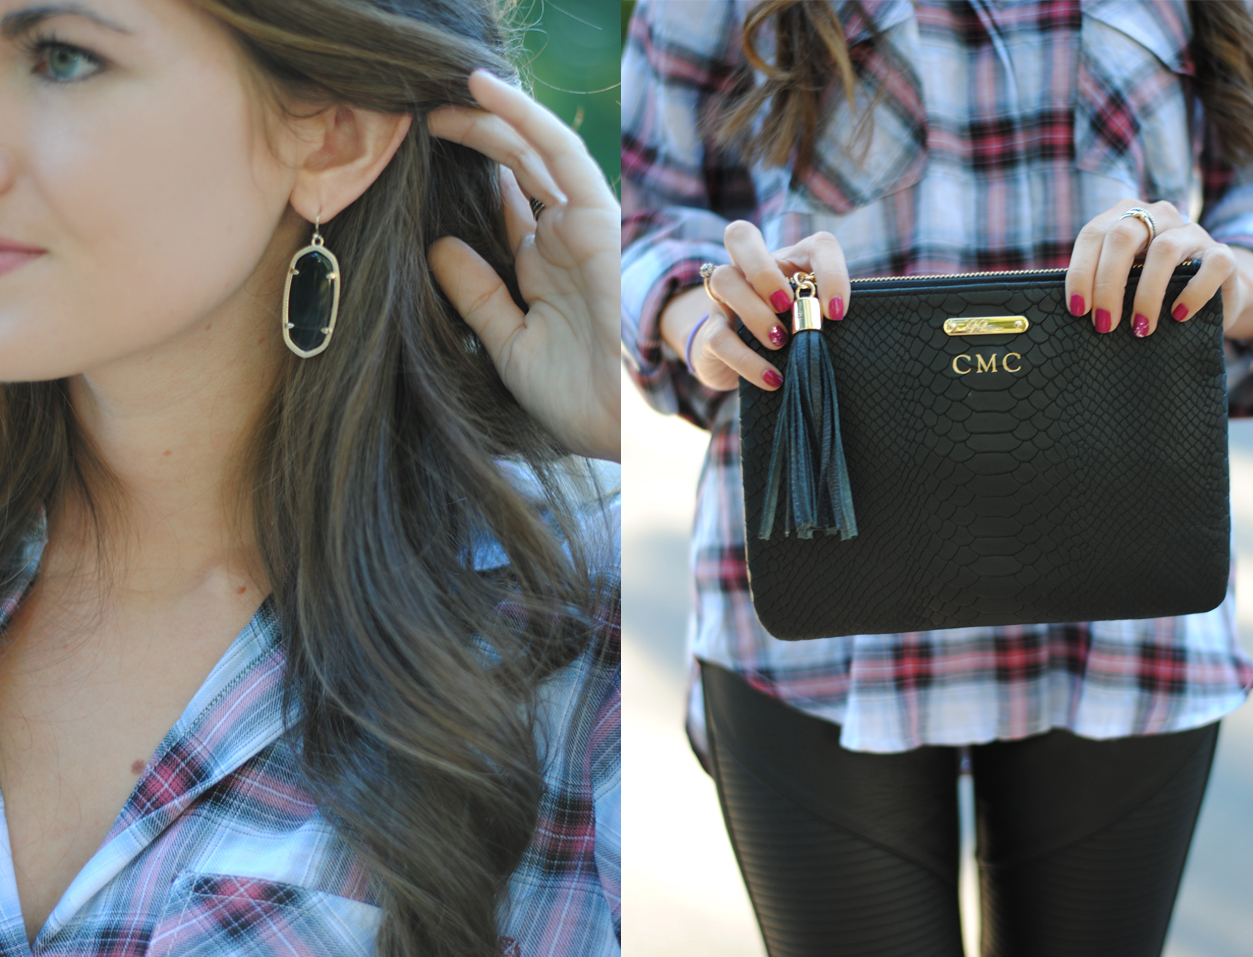 Enter to win these Kendra Scott earrings and GiGi New York clutch!